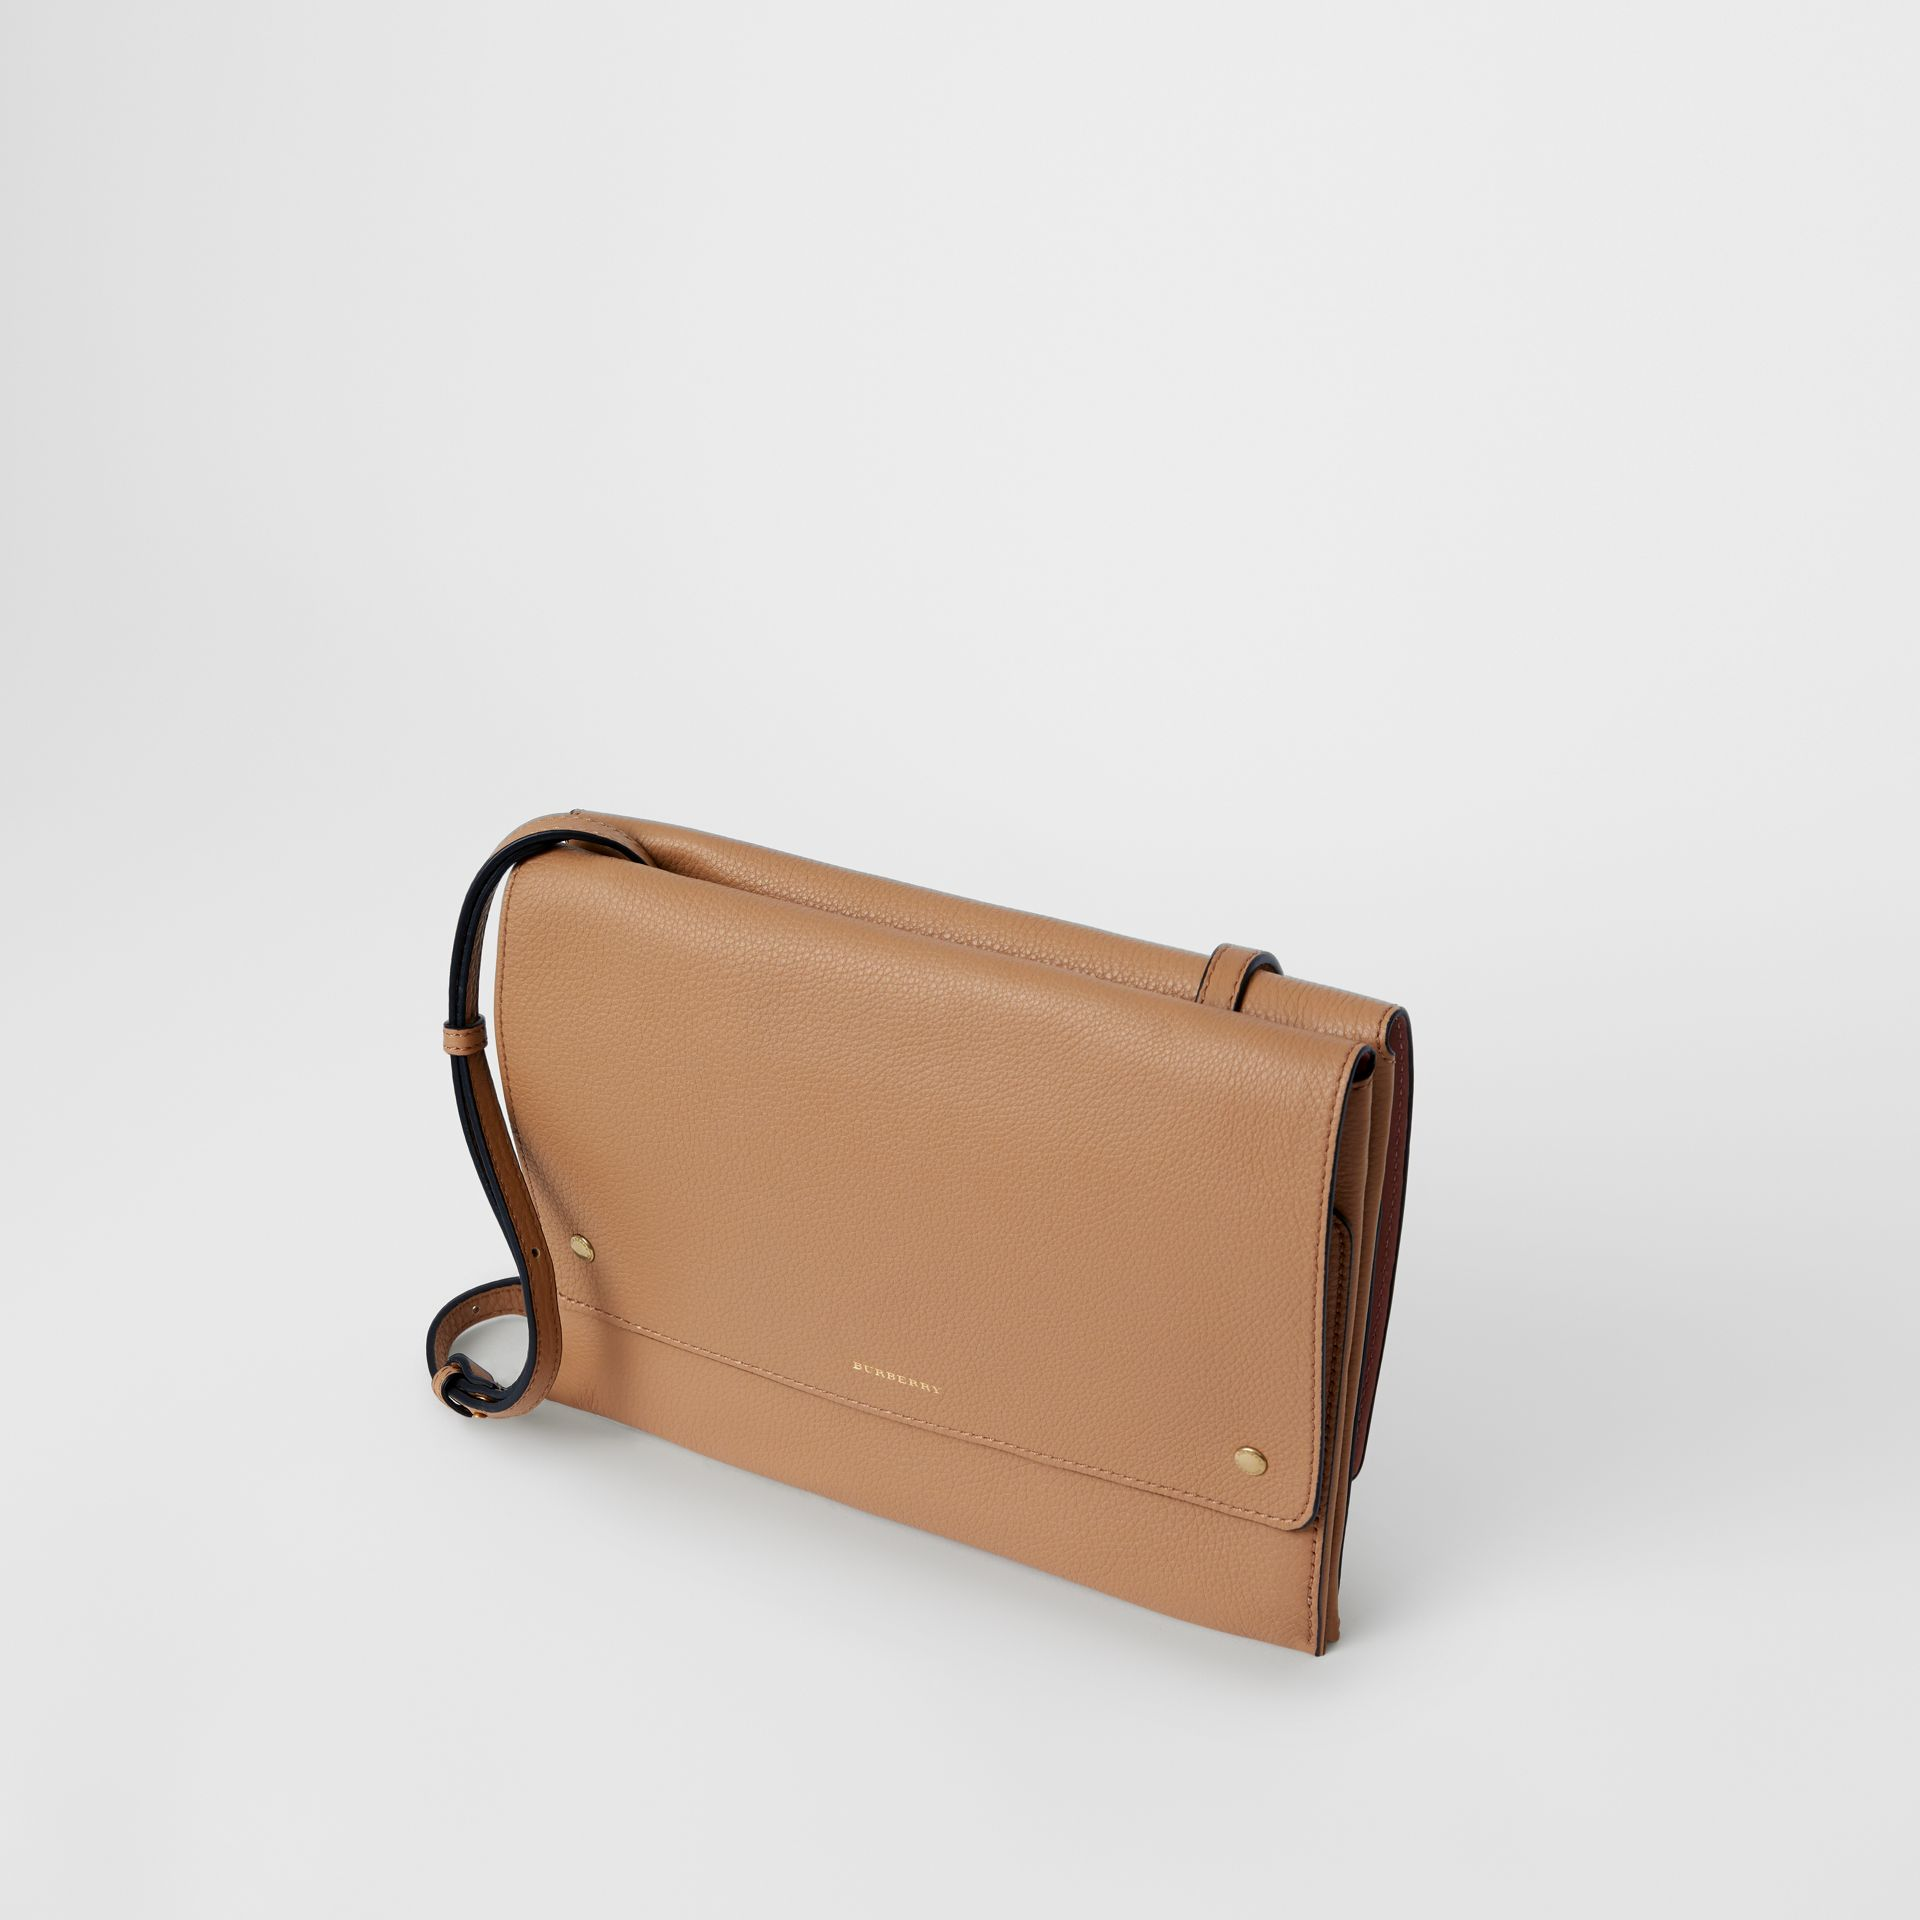 Leather Envelope Crossbody Bag in Light Camel - Women | Burberry United Kingdom - gallery image 4